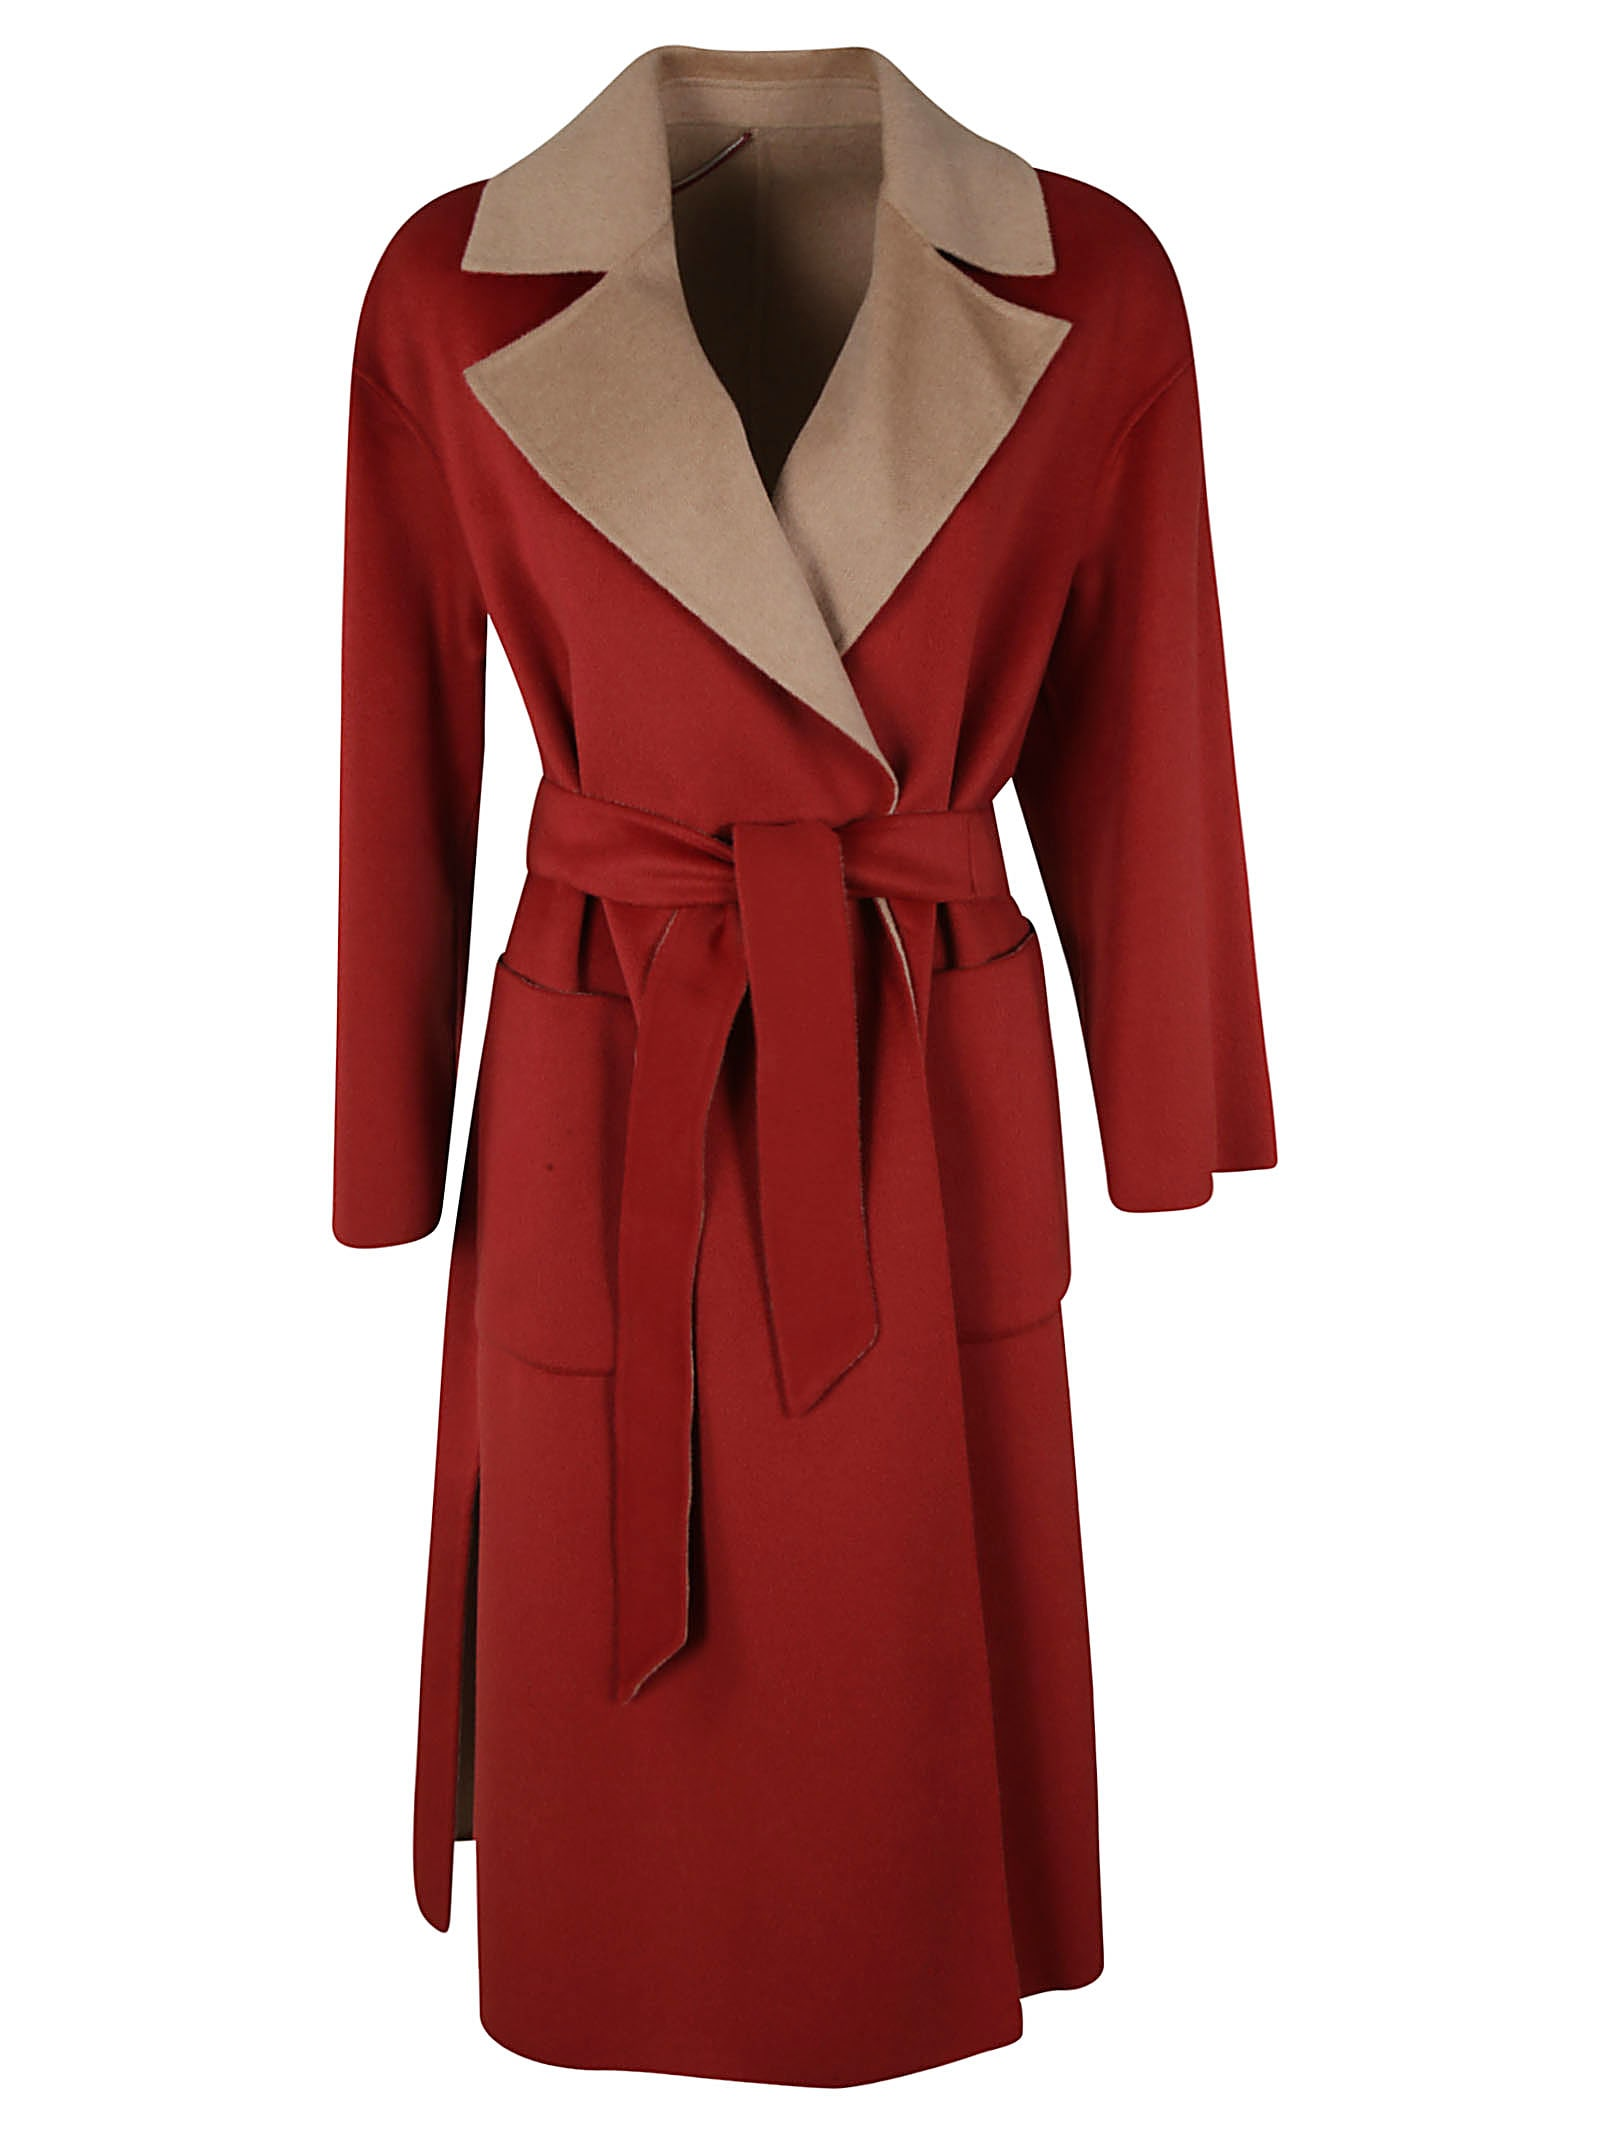 Photo of  Max Mara Studio Zibetto Coat- shop Max Mara Studio jackets online sales